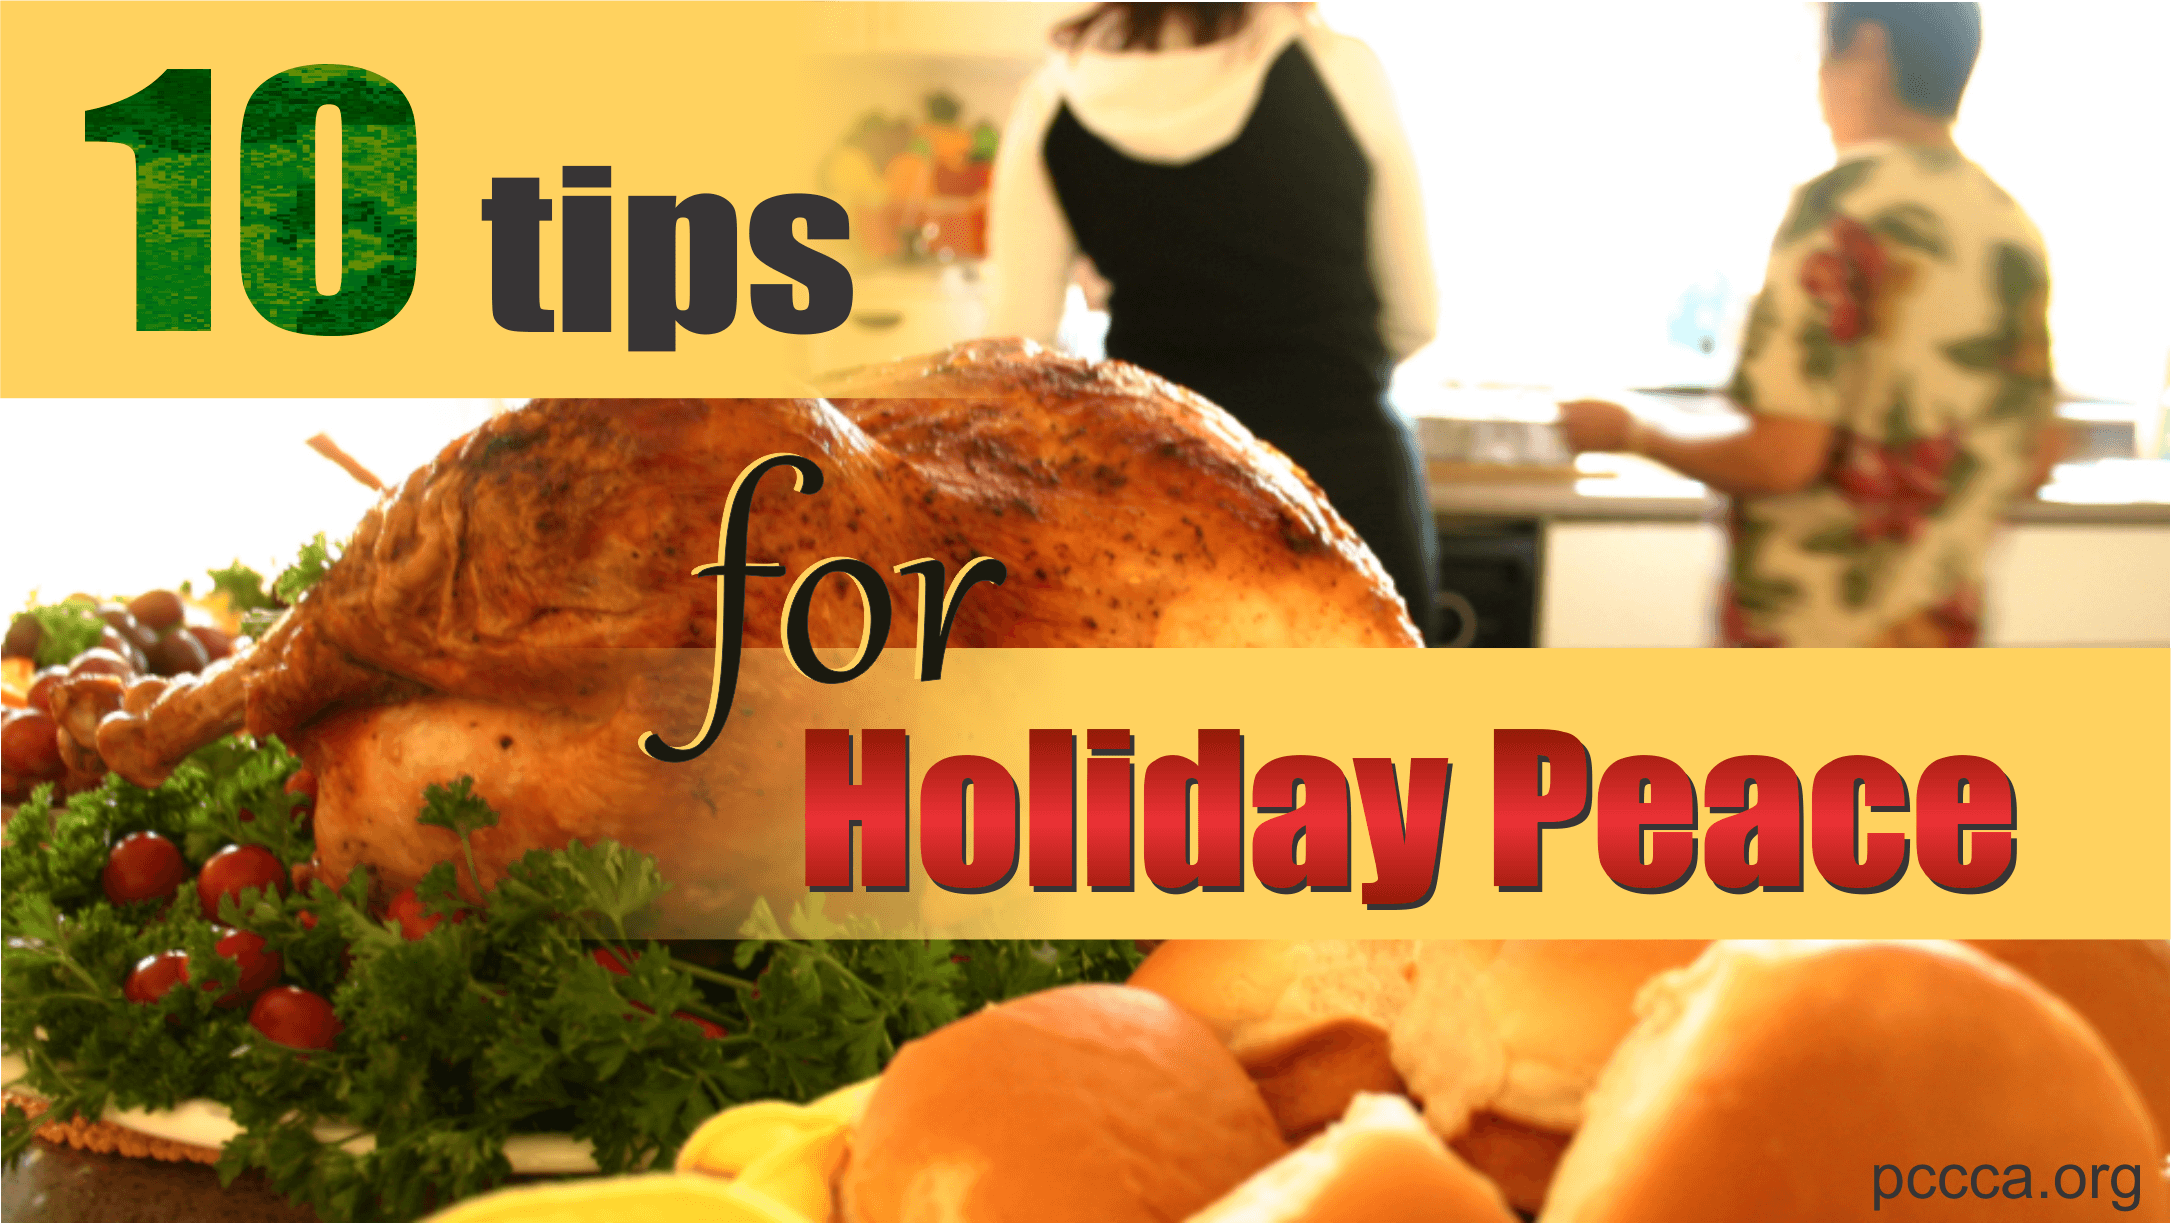 promote peace at holiday gatherings https://pccca.org